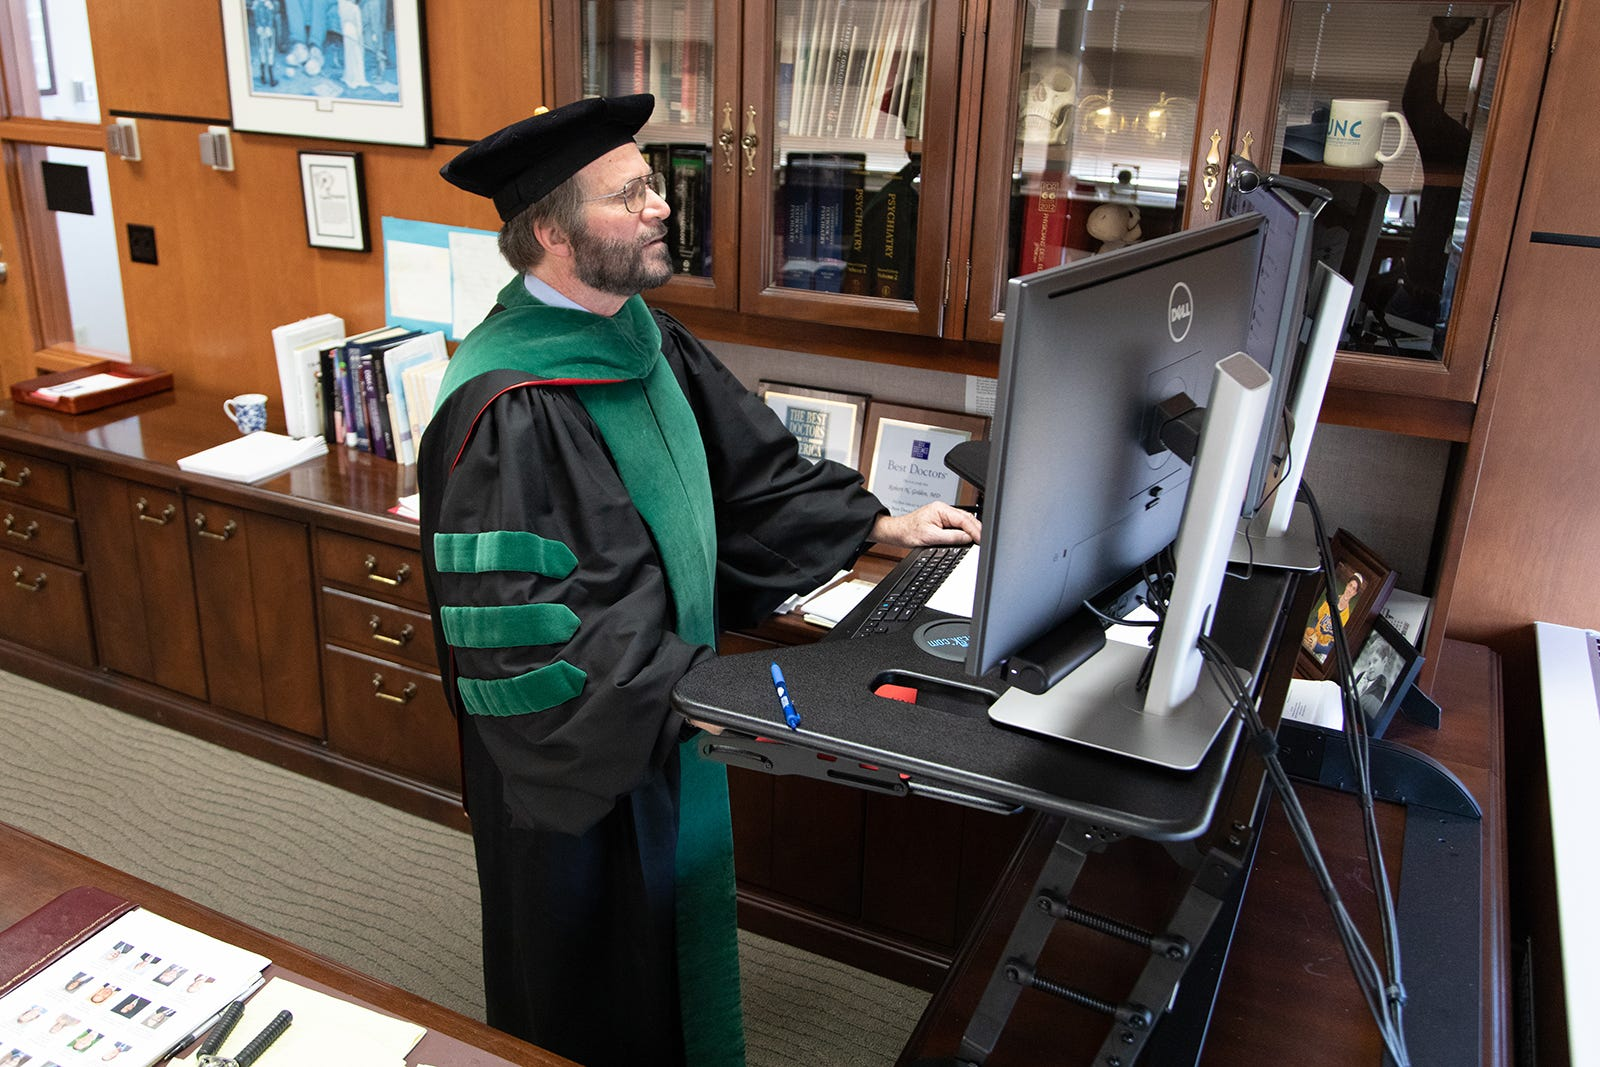 University of Wisconsin School of Medicine and Public Health Dean Robert Golden participates in the School's first virtual graduation ceremony held during the 2020 COVID-19 pandemic.